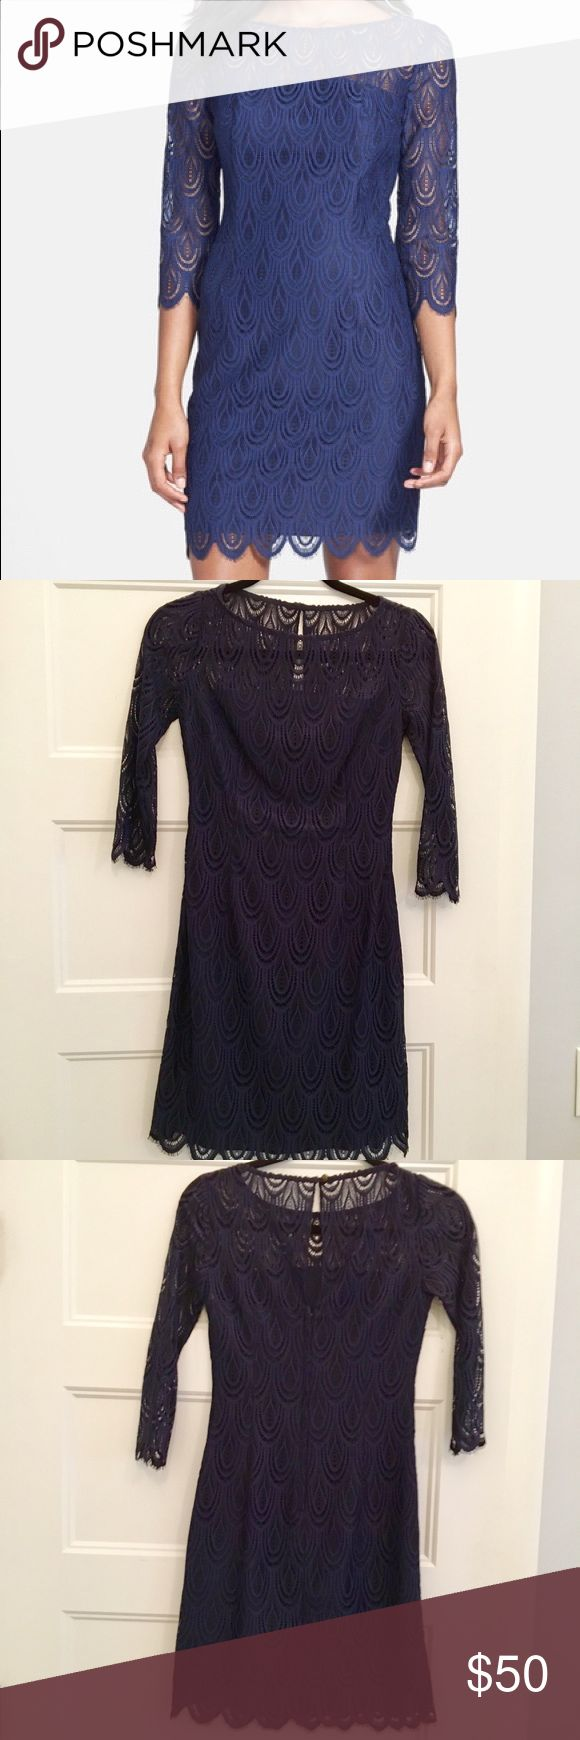 Lilly Pulitzer 3/4 Sleeve Navy Lace Dress Lilly Pulitzer Hera Lace Sheath! Beautiful navy dress that works equally well for dinner dates or cocktail parties. Very flattering cut and fabric and way more fun than another black dress! Lilly Pulitzer Dresses